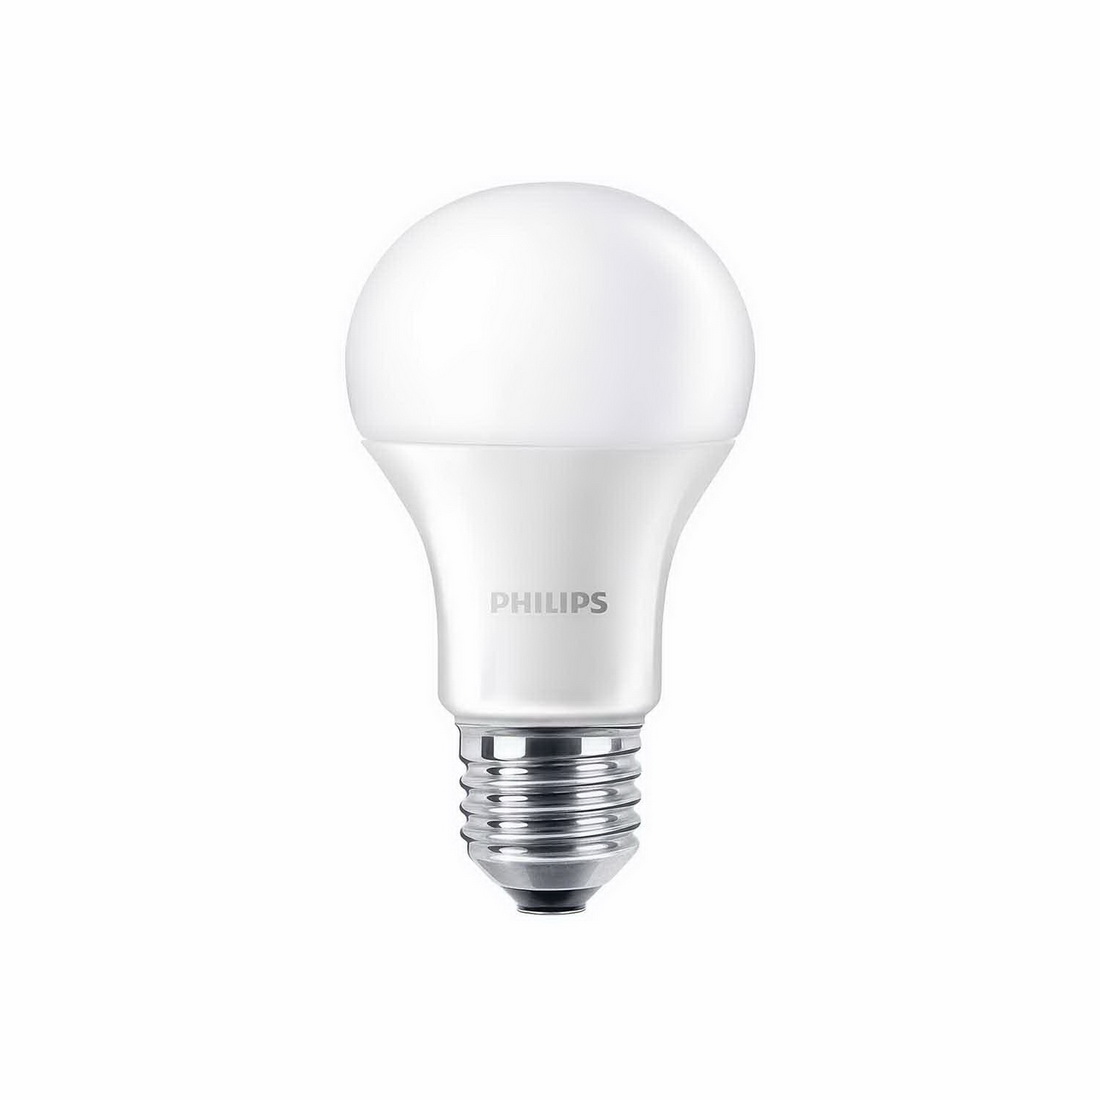 Master 8.5W 806lm E27 2700K A60 Dimmable LED Bulb Warm Glow Frosted